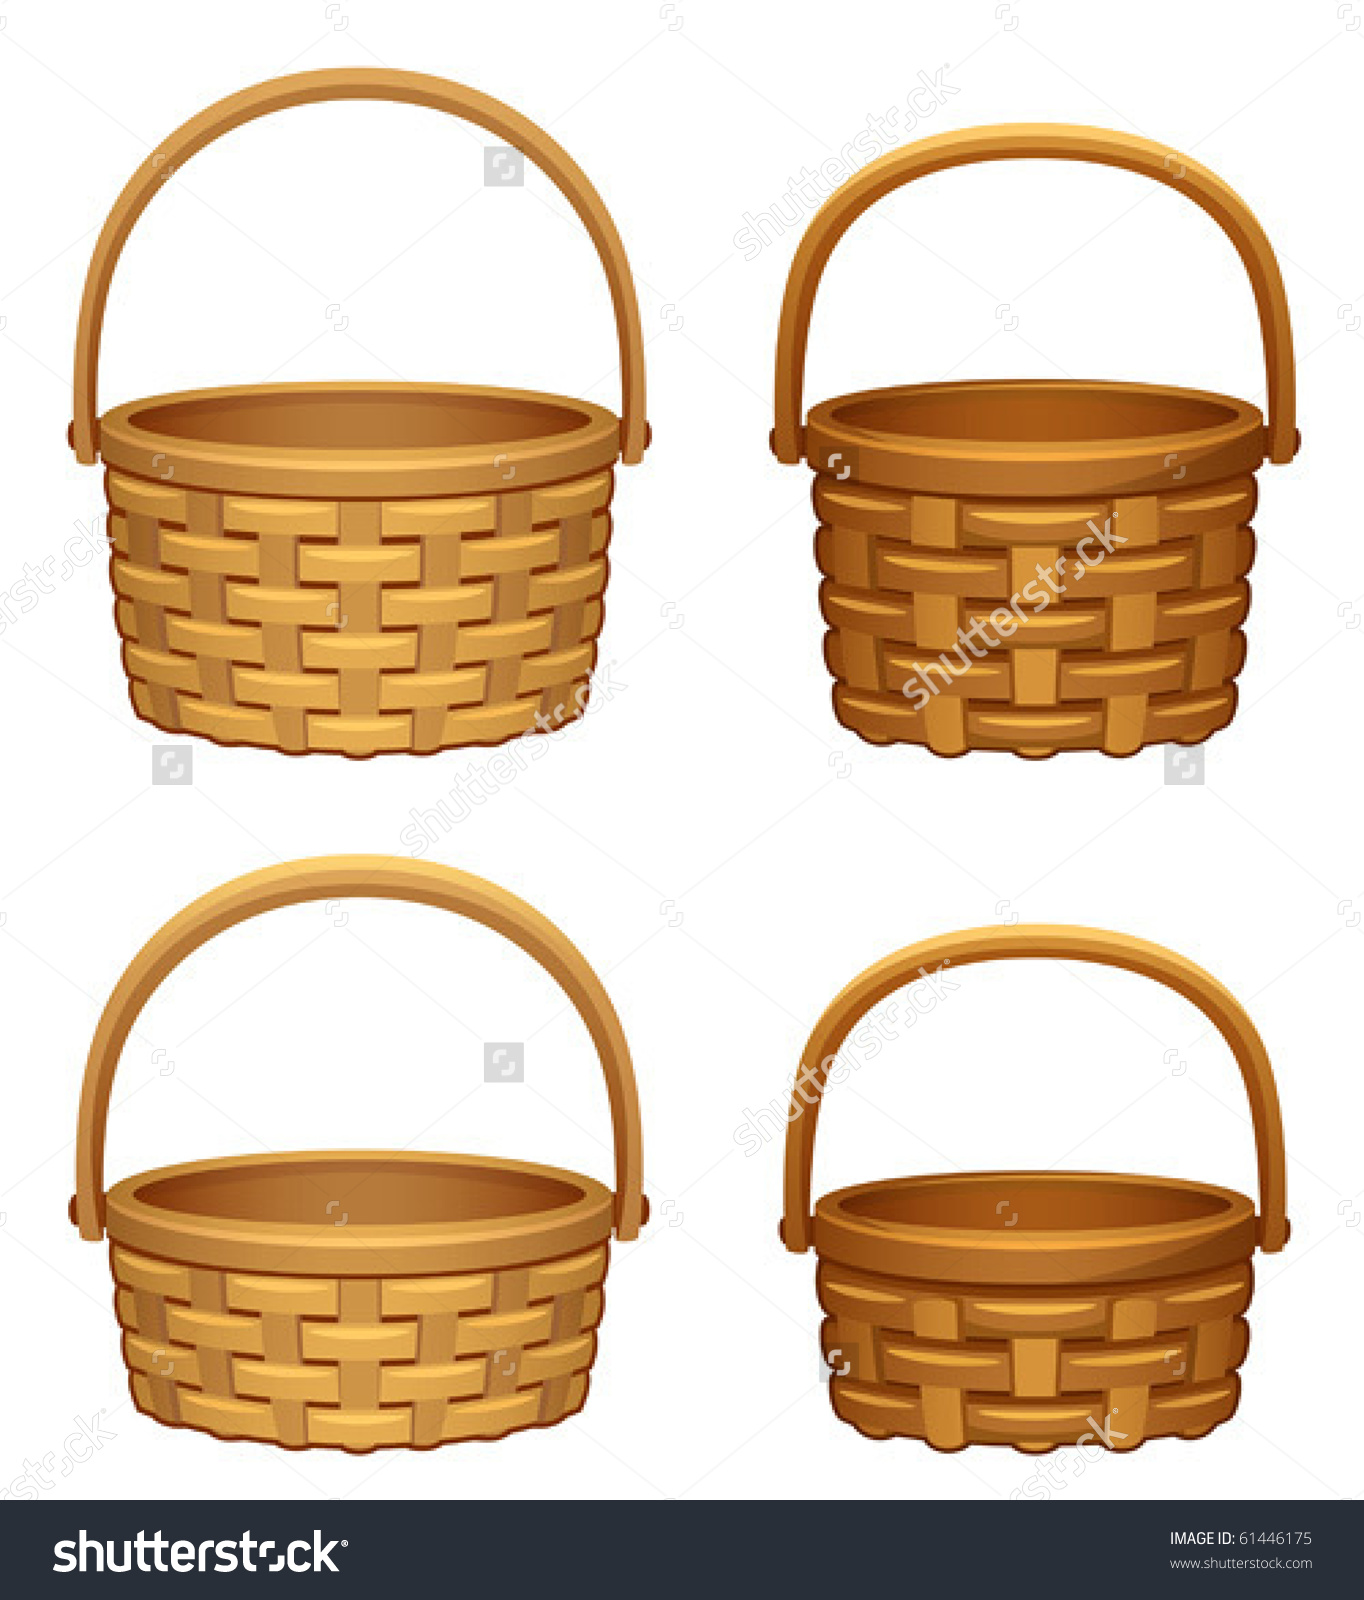 Isolated royalty free stock. Basket clipart woven basket